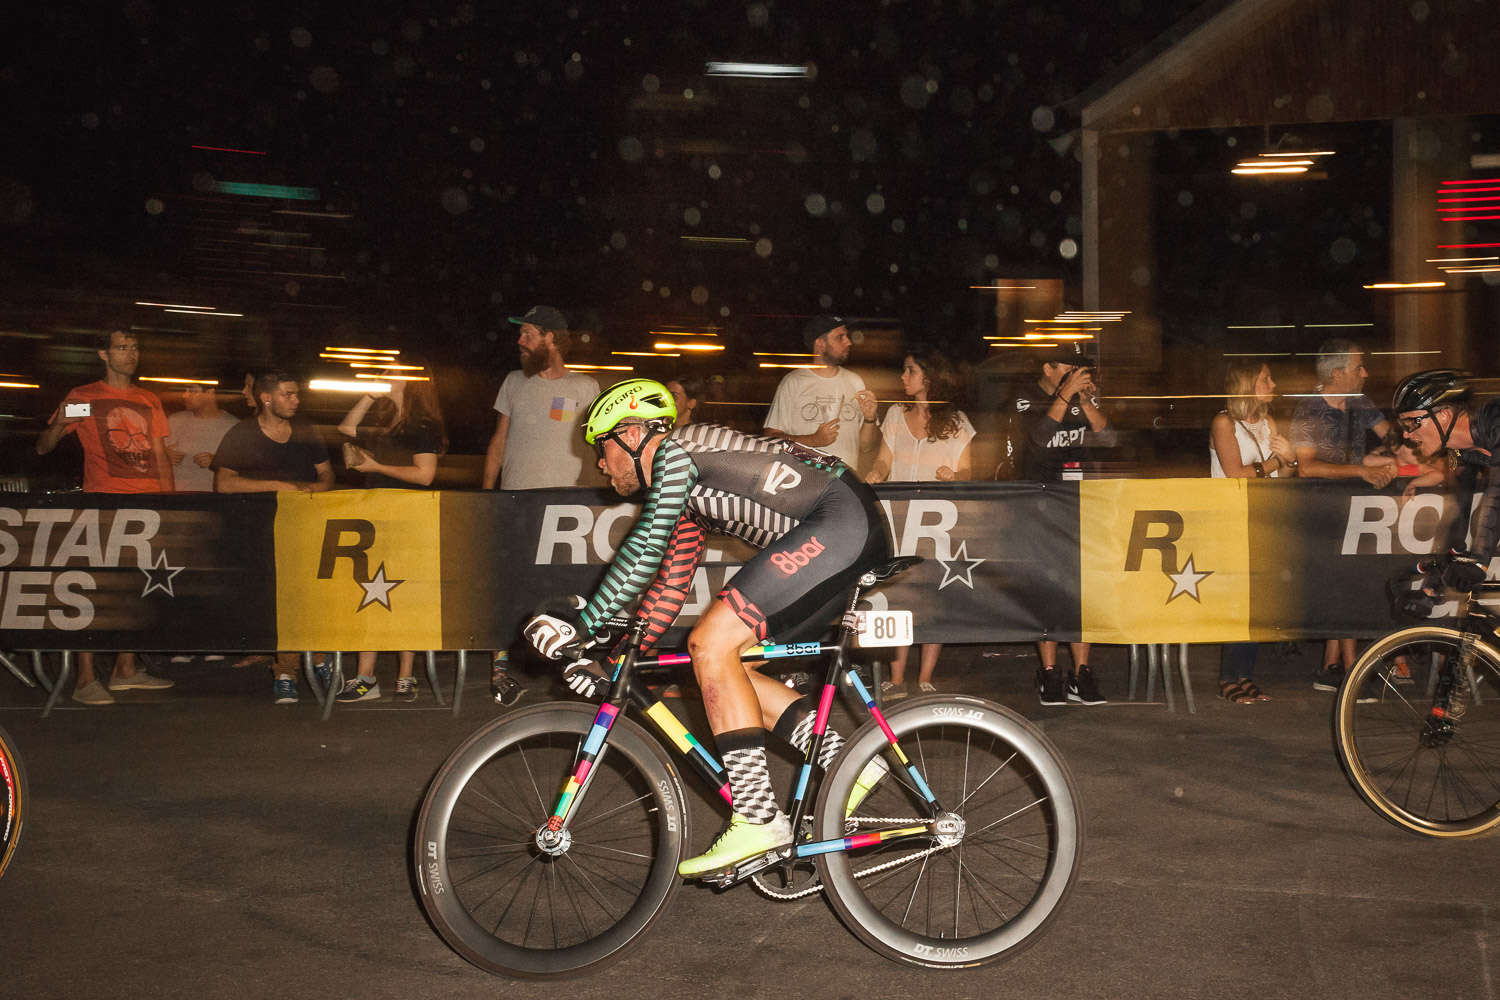 8bar rookies red hook crit barcelona fixie fixed gear184 - 8bar at Red Hook Criterium Barcelona 2016